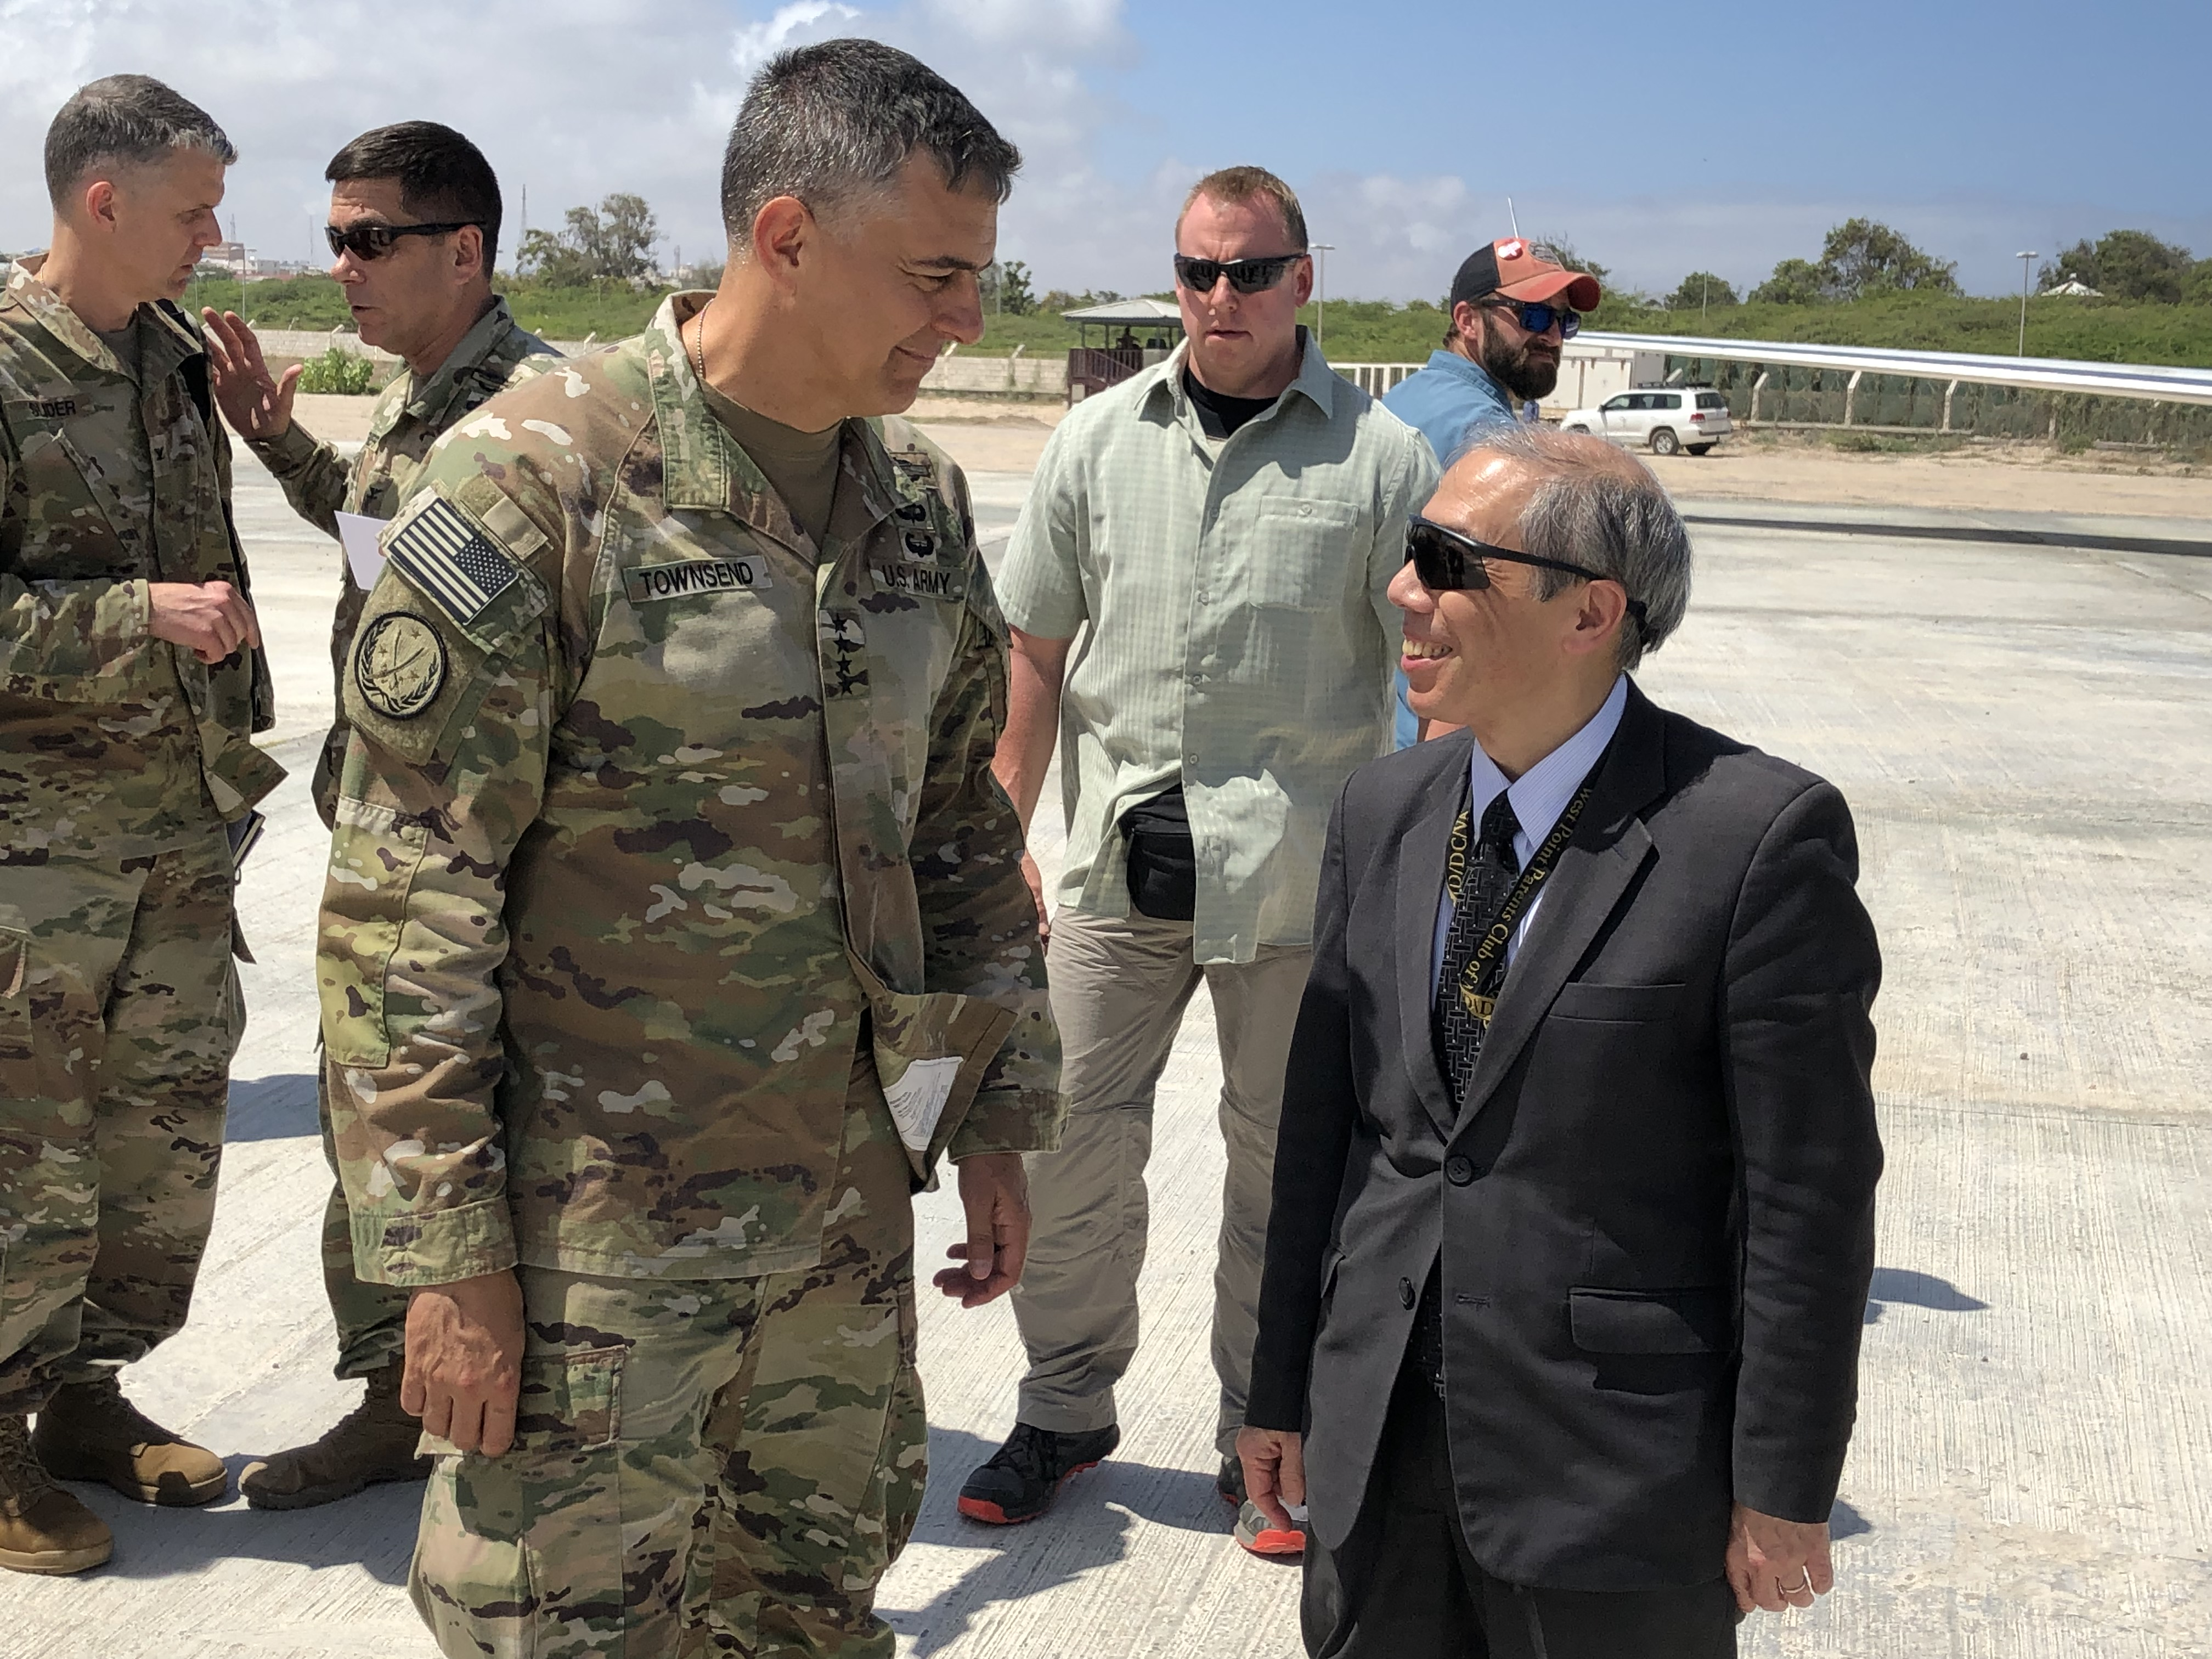 U.S. Army Gen. Stephen Townsend speaks with Amb. Donald Yamamoto, U.S. Ambassdor to Somalia Aug. 7, 2019. Townsend visited Somalia as part of his first trip to the African continent since taking command on July 26.